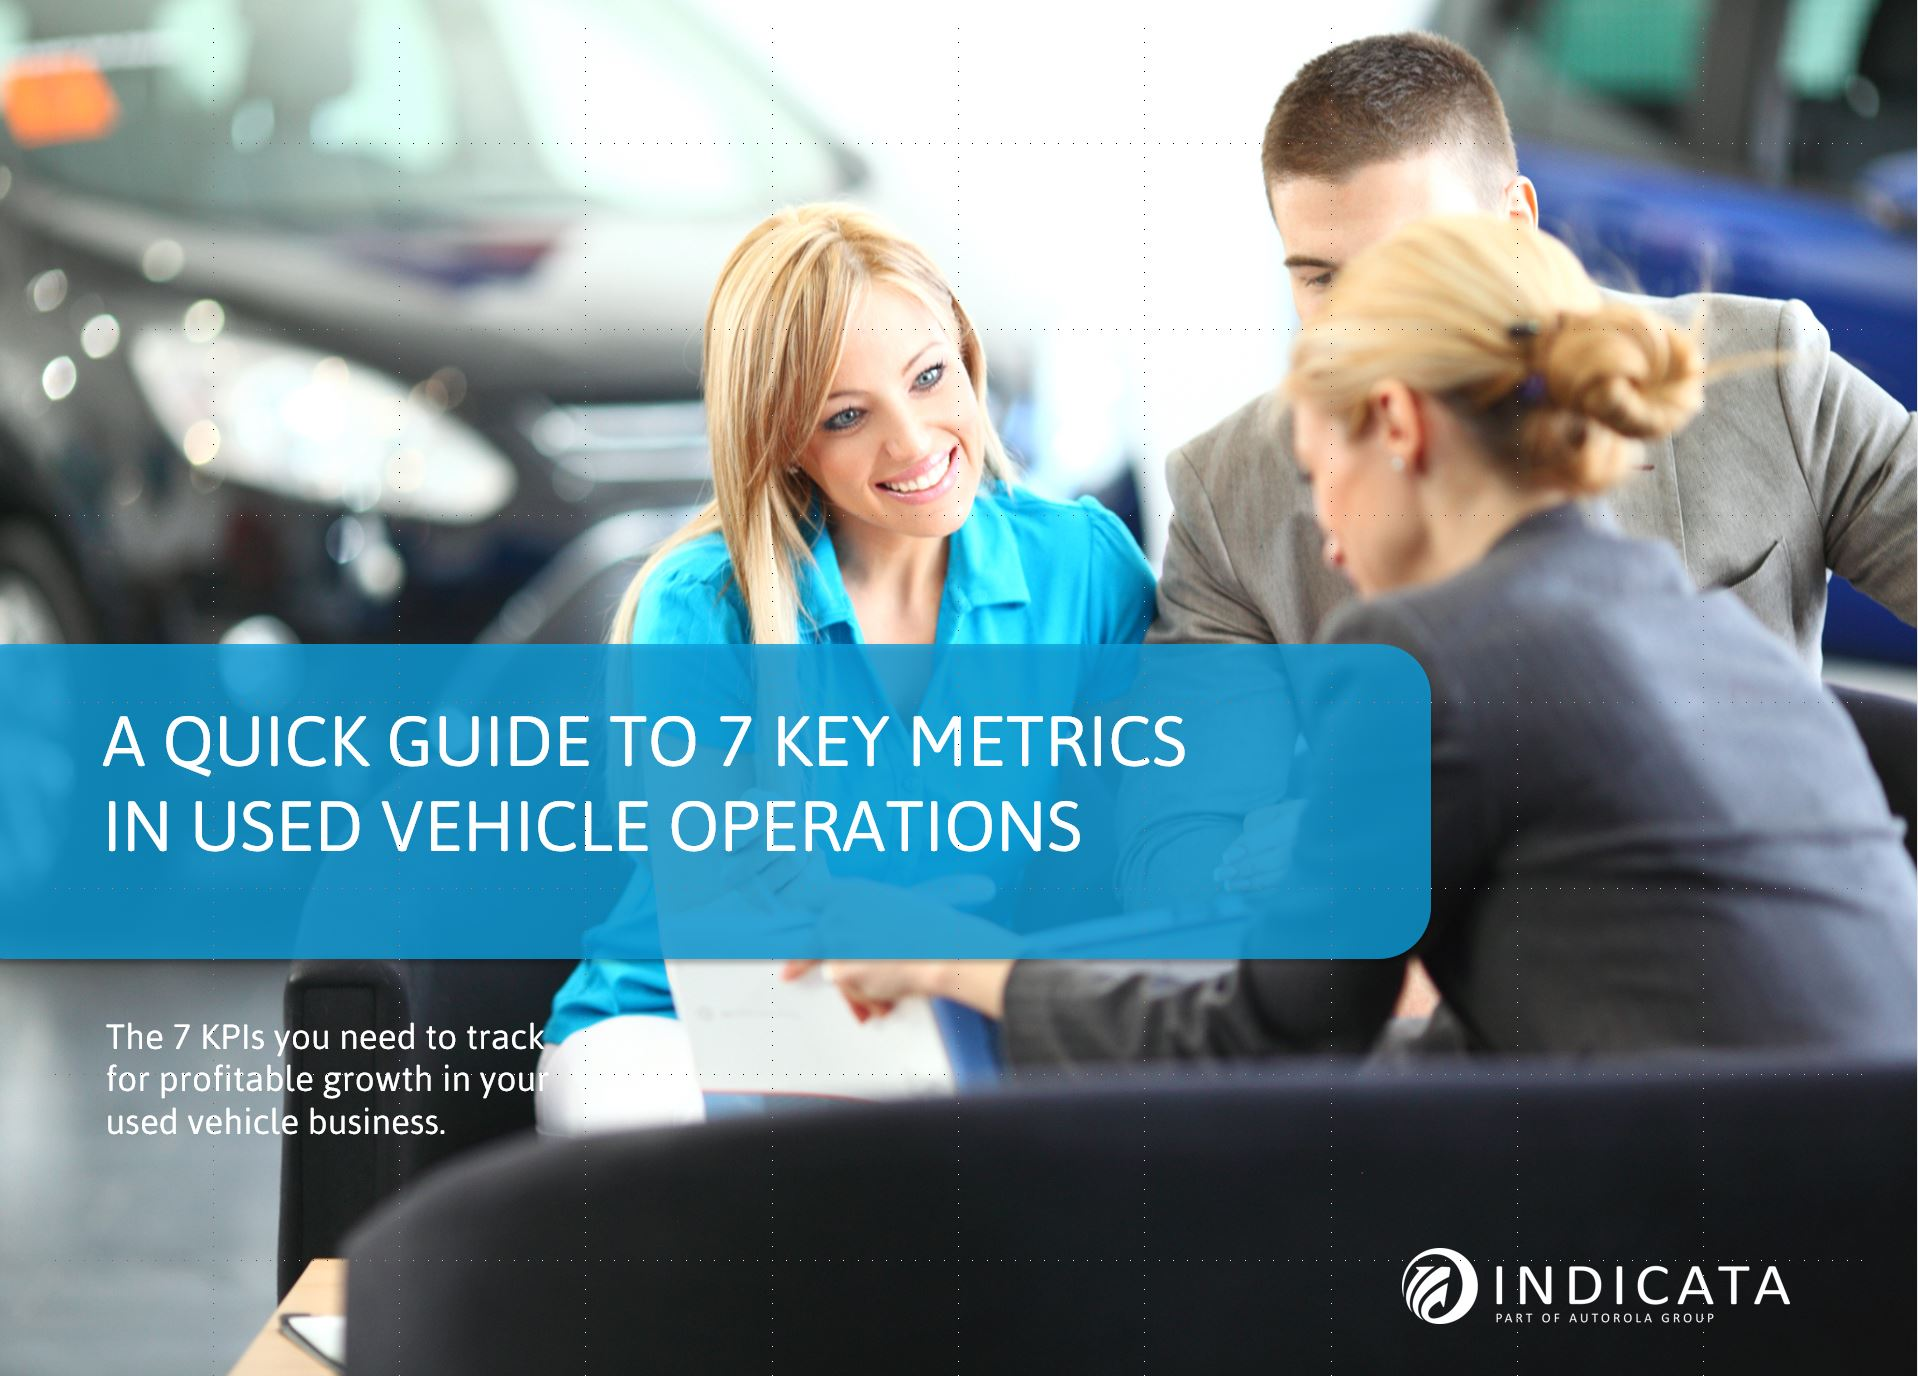 Quick Guide to 7 KeyMetrics